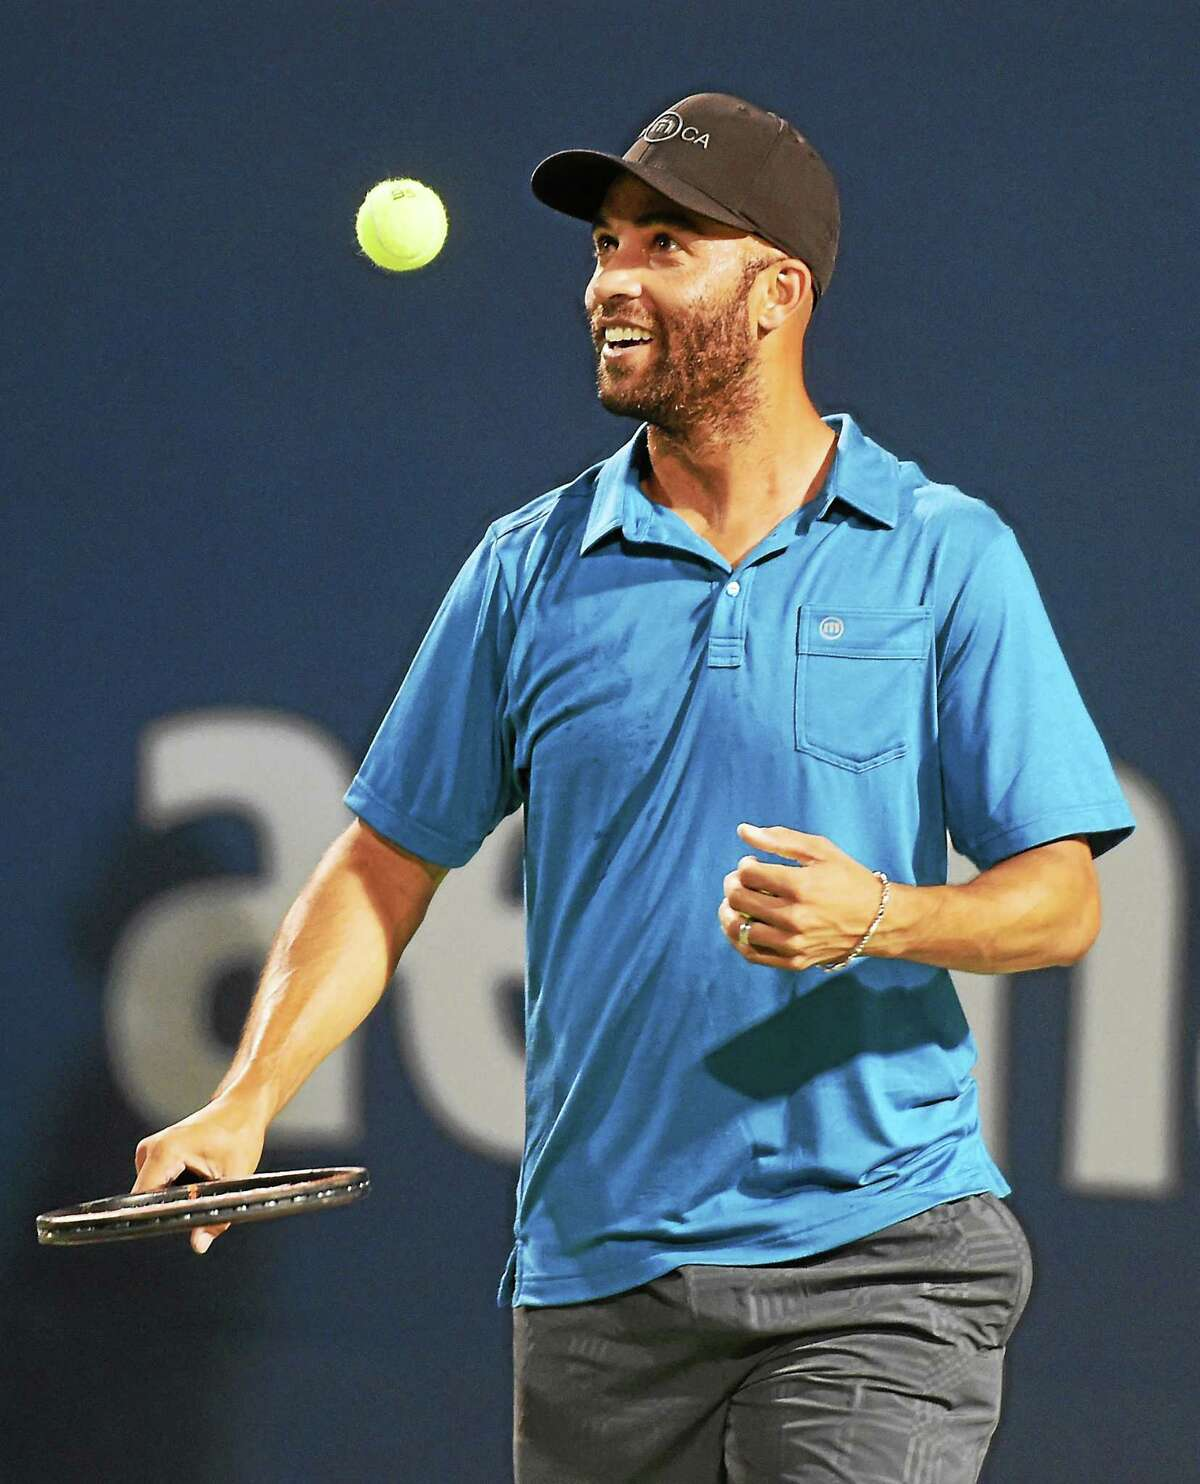 James Blake smiles after winning a point against Andy Roddick in the first set of an exhibition match on Thursday night at the Connecticut Tennis Center.